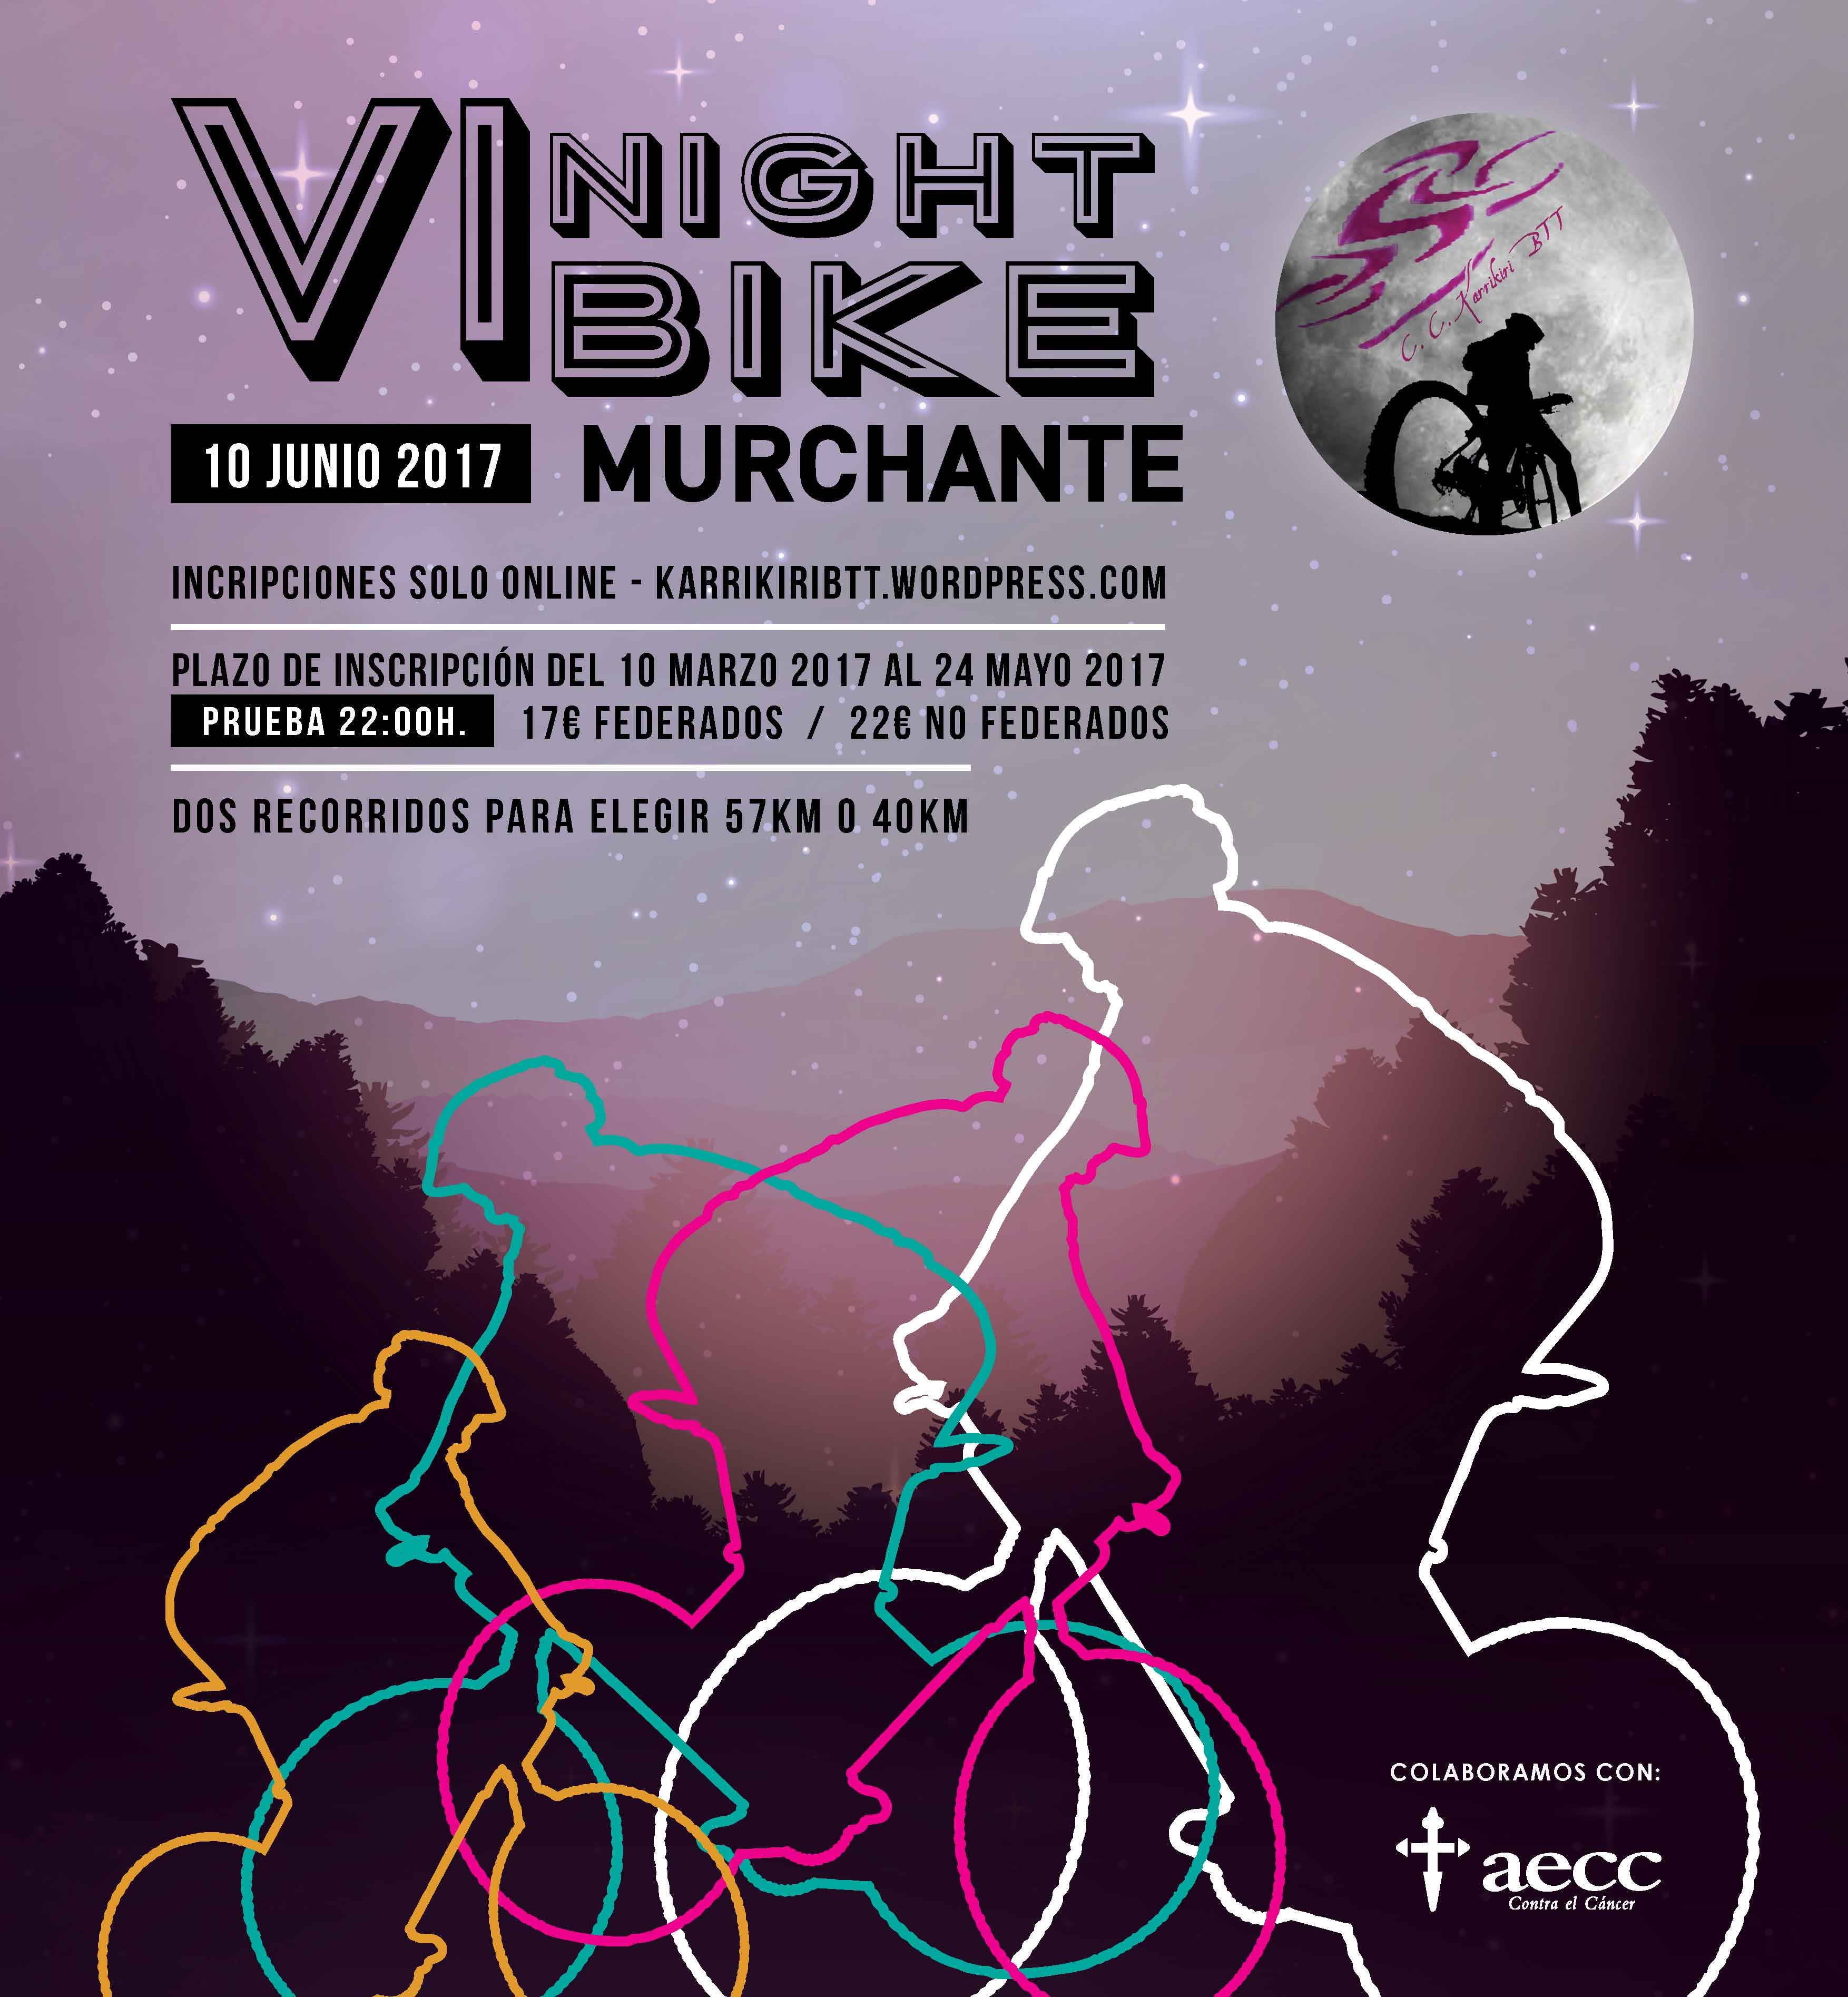 VI Night & Bike 2017